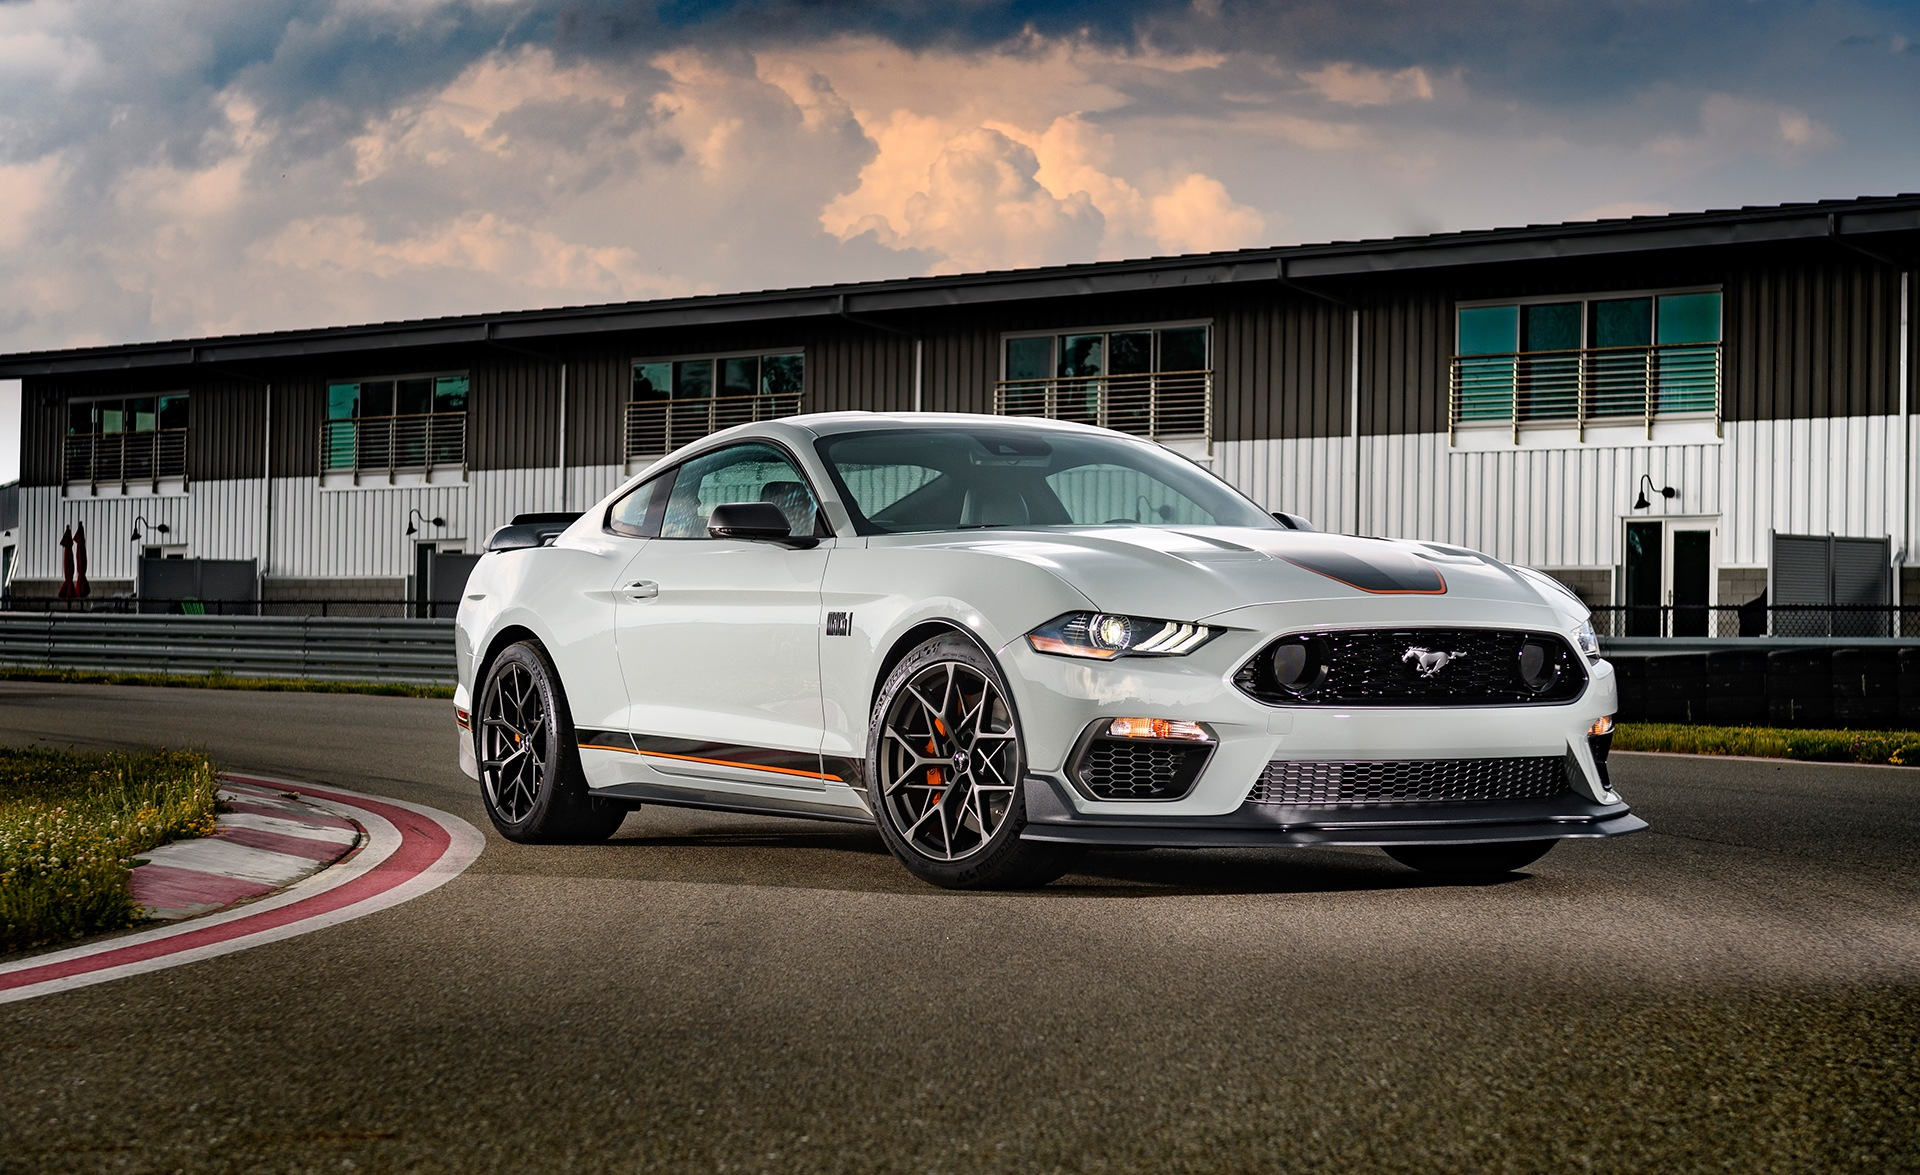 2021 Ford Mustang Mach 1 Is A Limited Edition 480 Hp